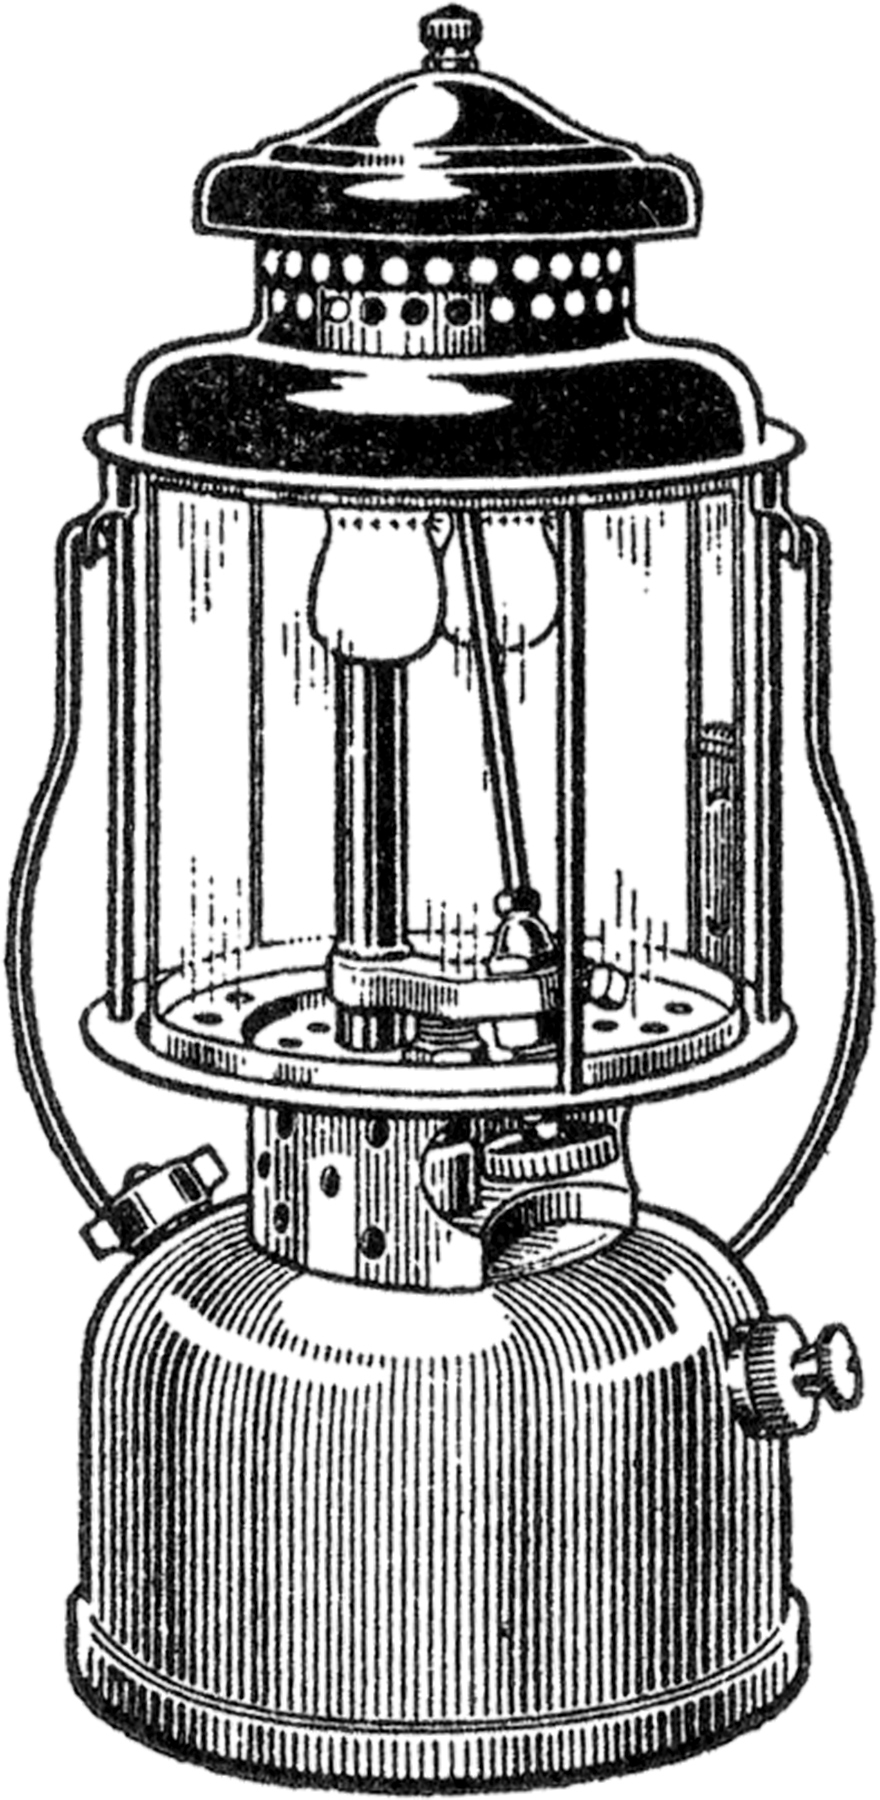 Latern clipart old fashioned Image Camping Lantern Free Image